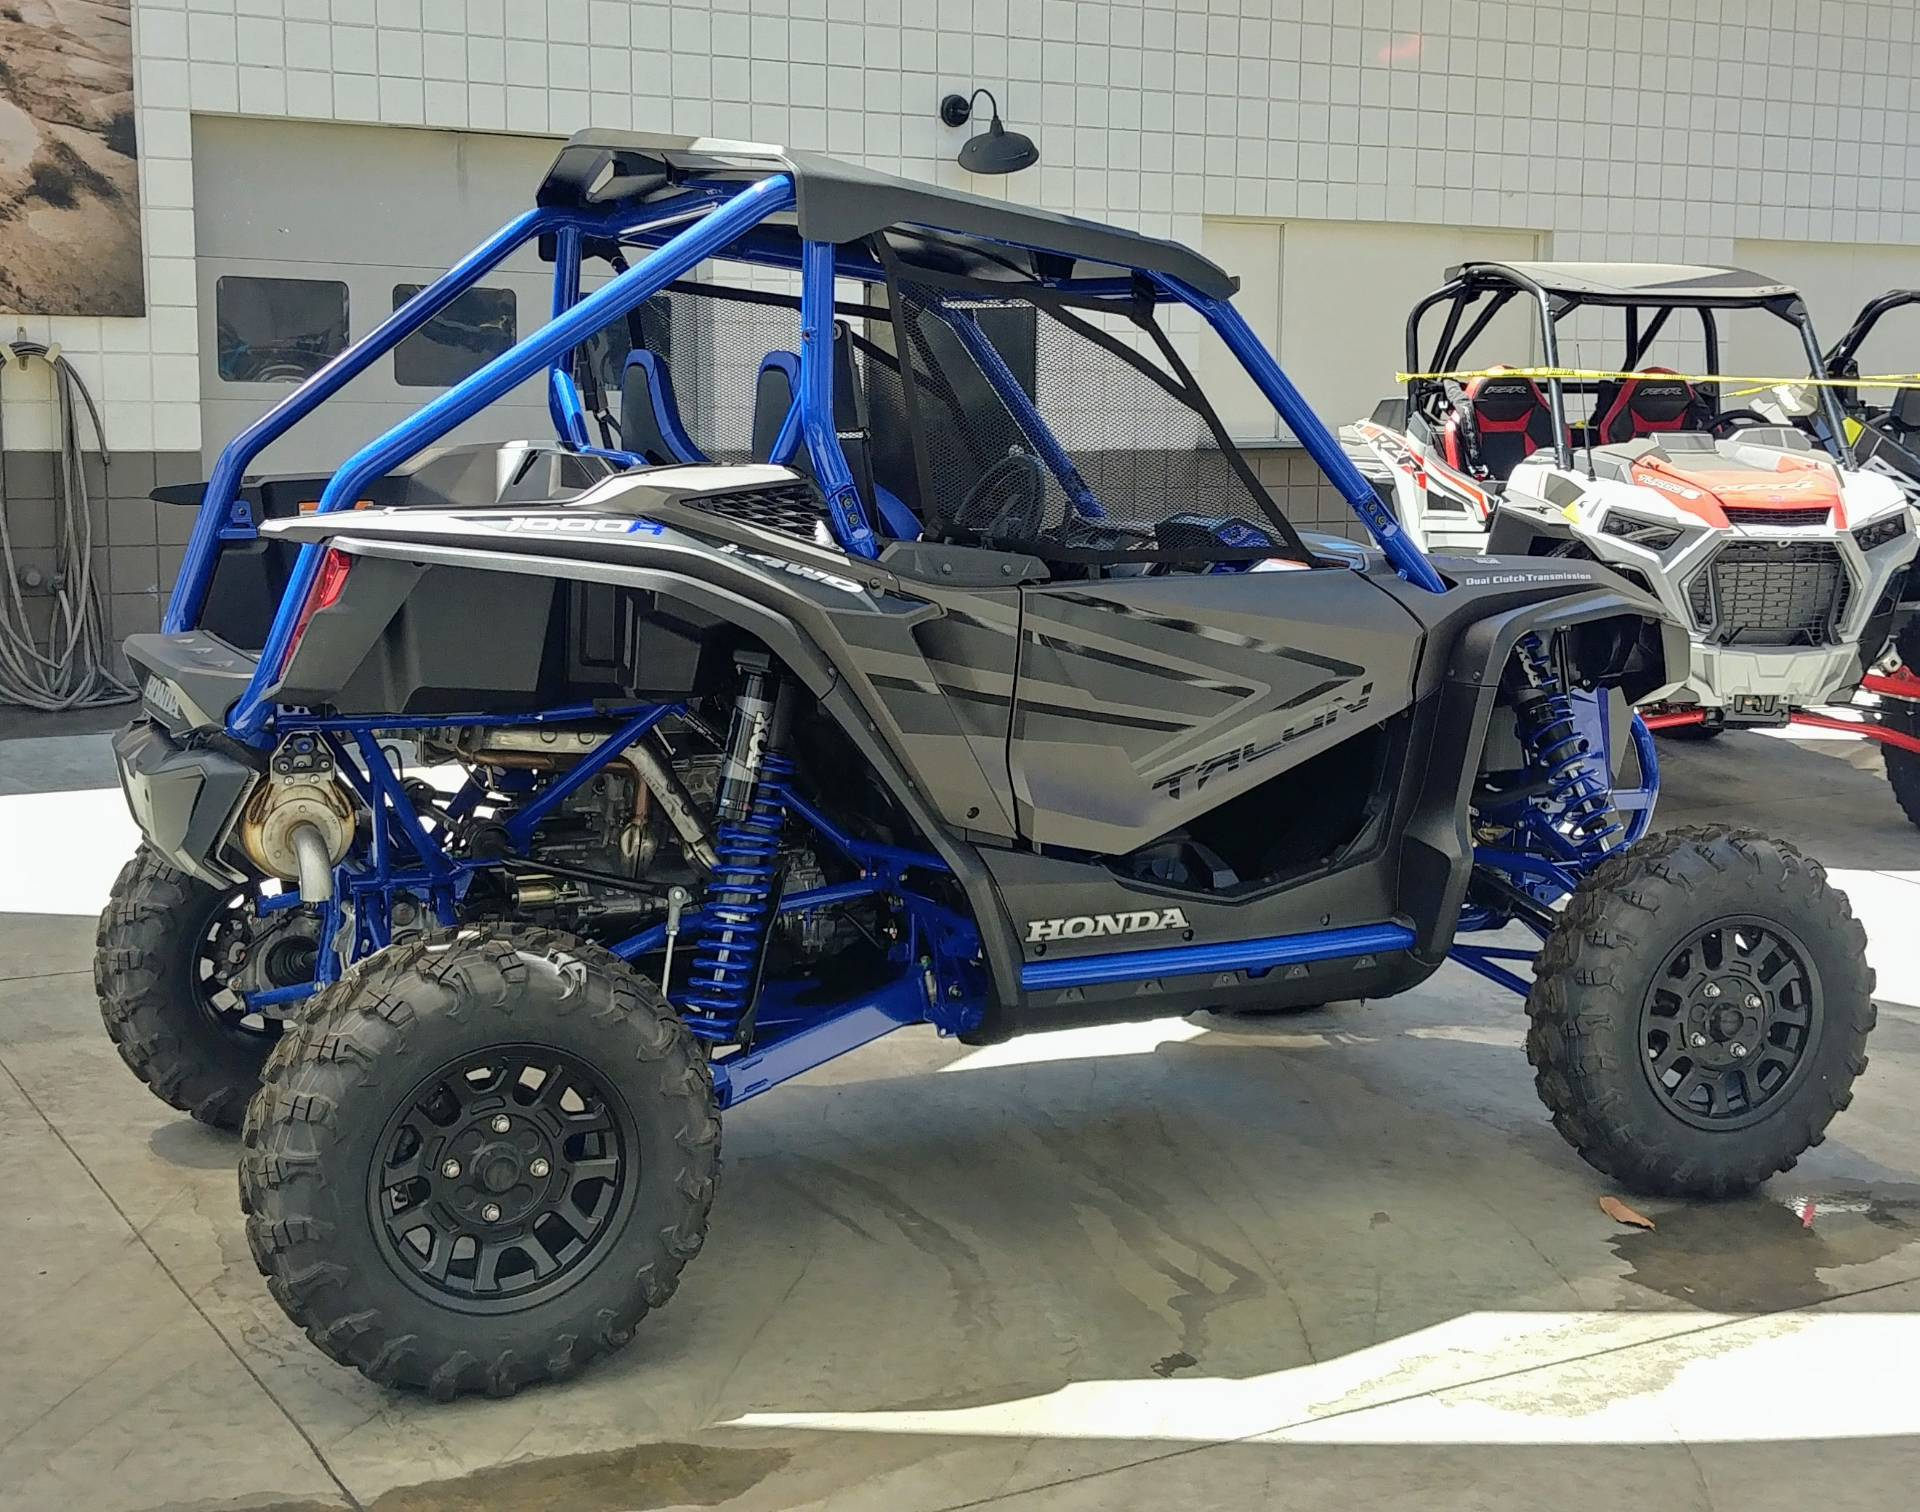 2021 Honda Talon 1000R FOX Live Valve in Ontario, California - Photo 5